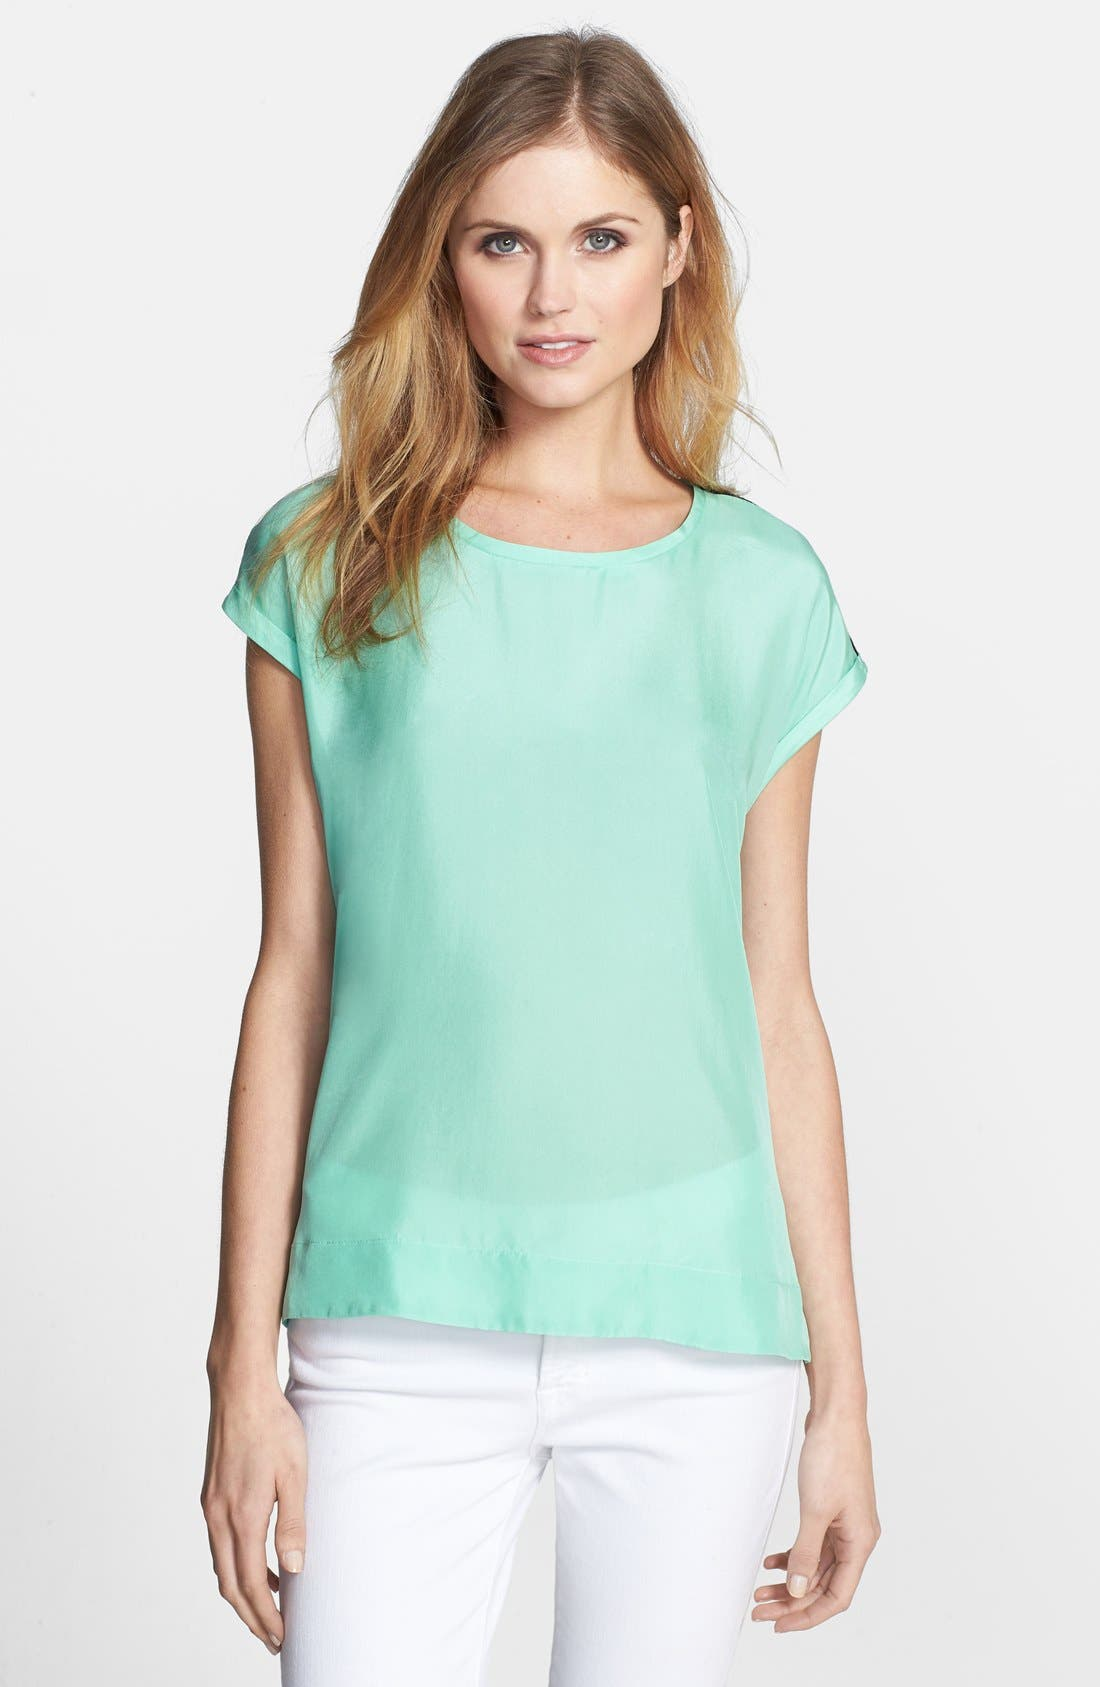 Alternate Image 1 Selected - Adrianna Papell Colorblock Mixed Media Tee